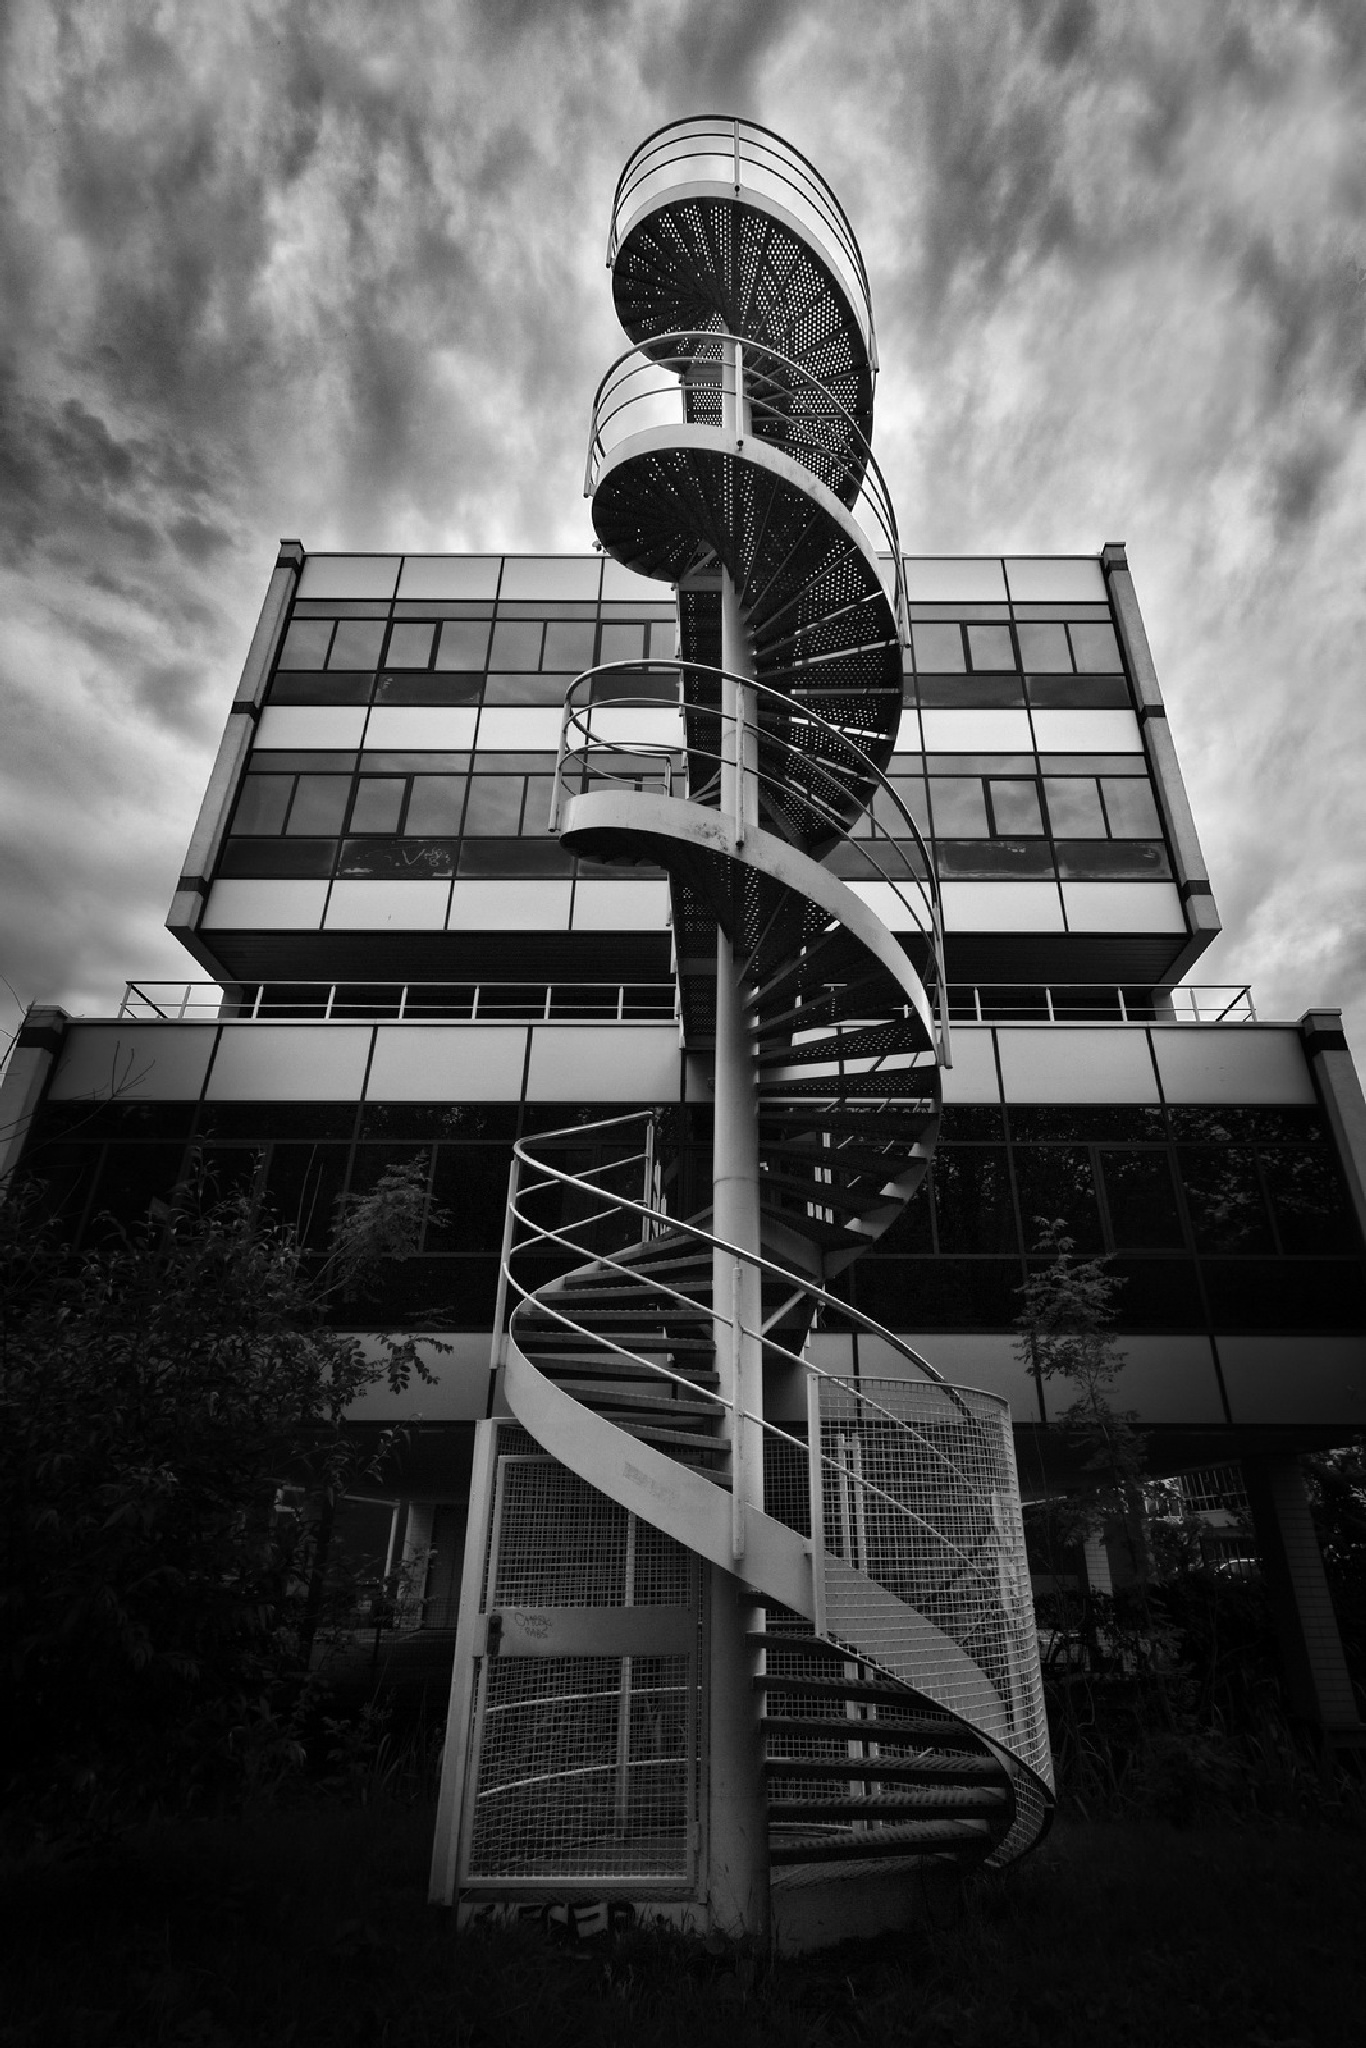 Spiral Staircase II by Pieter de Knijff Photography